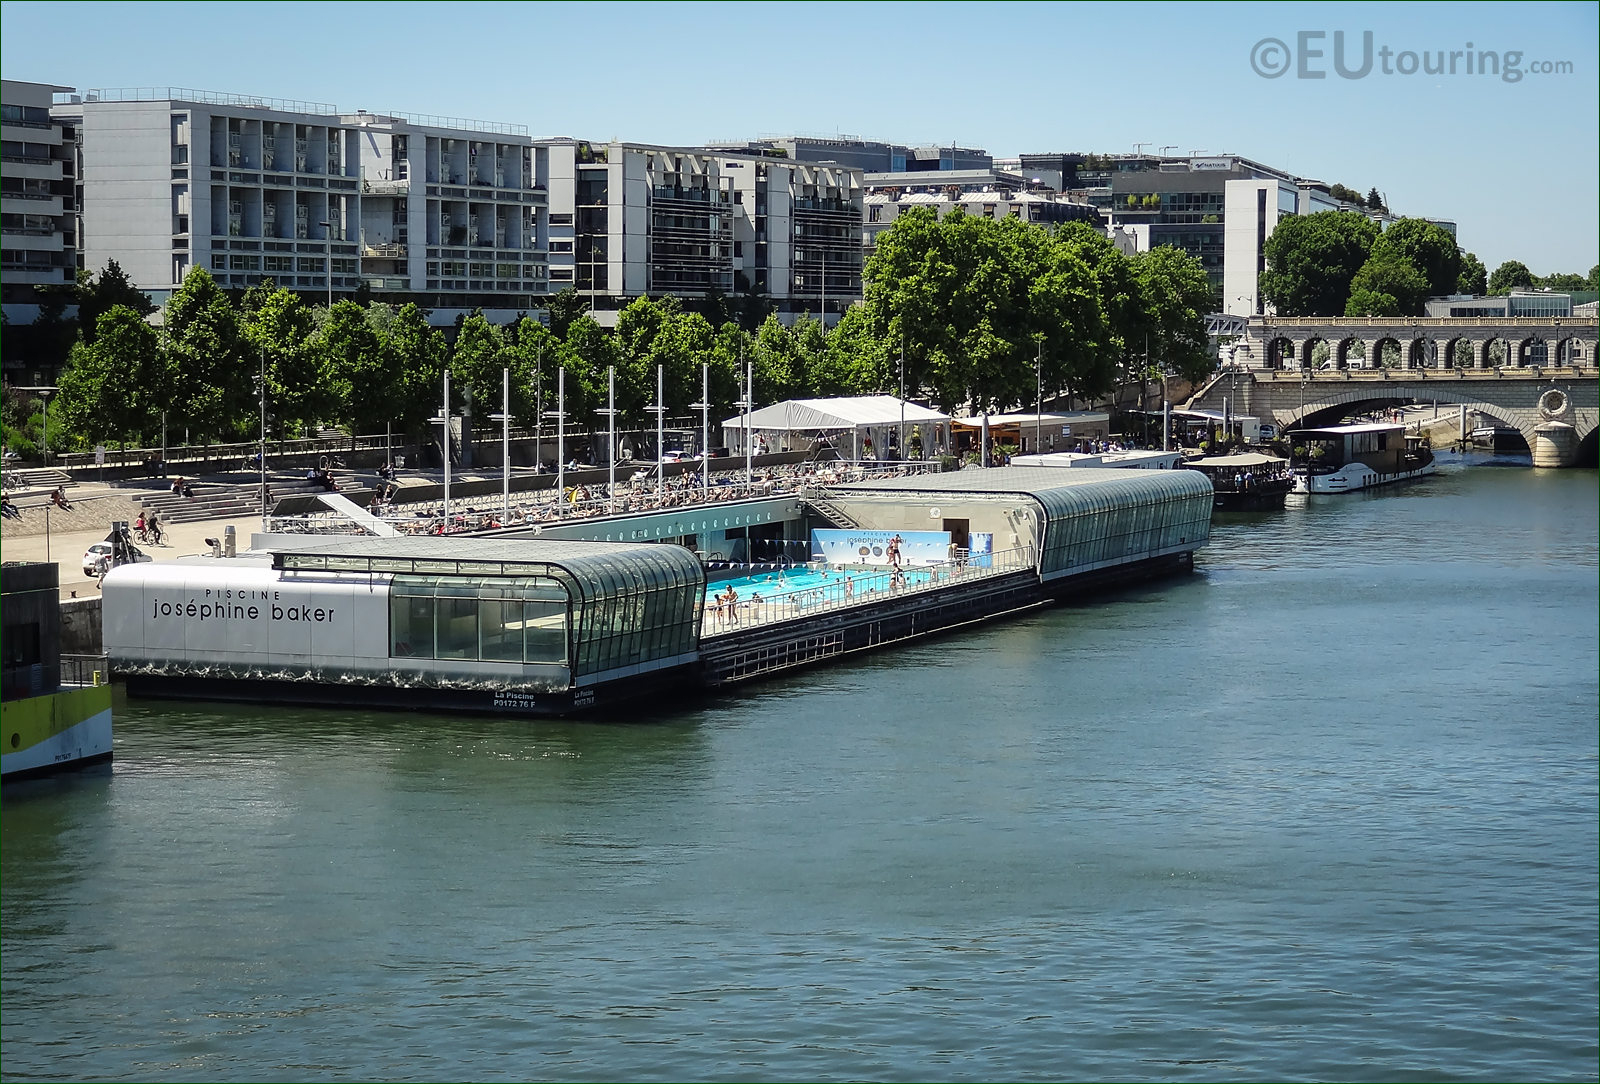 Photo Of Piscine Josephine Barker On The River Seine Paris ... intérieur Josephine Baker Piscine